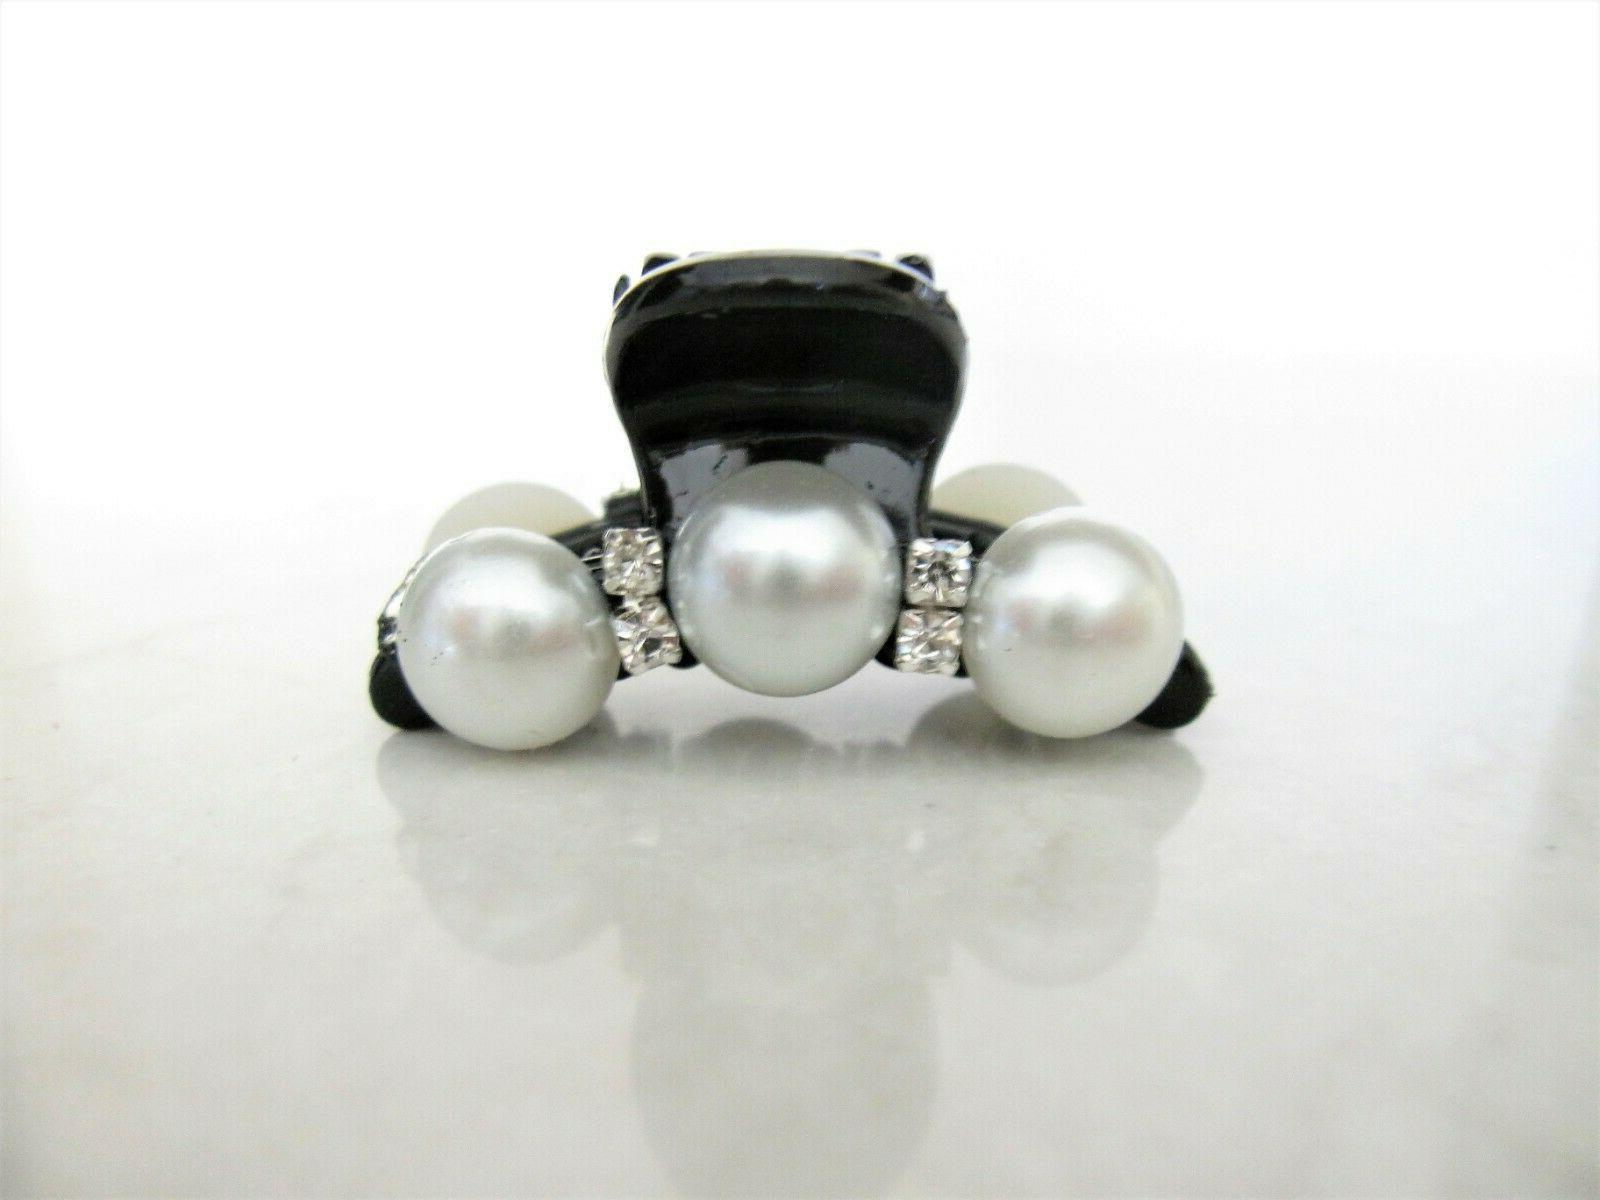 Small mini claw clip for thin hair with pearls and crystals